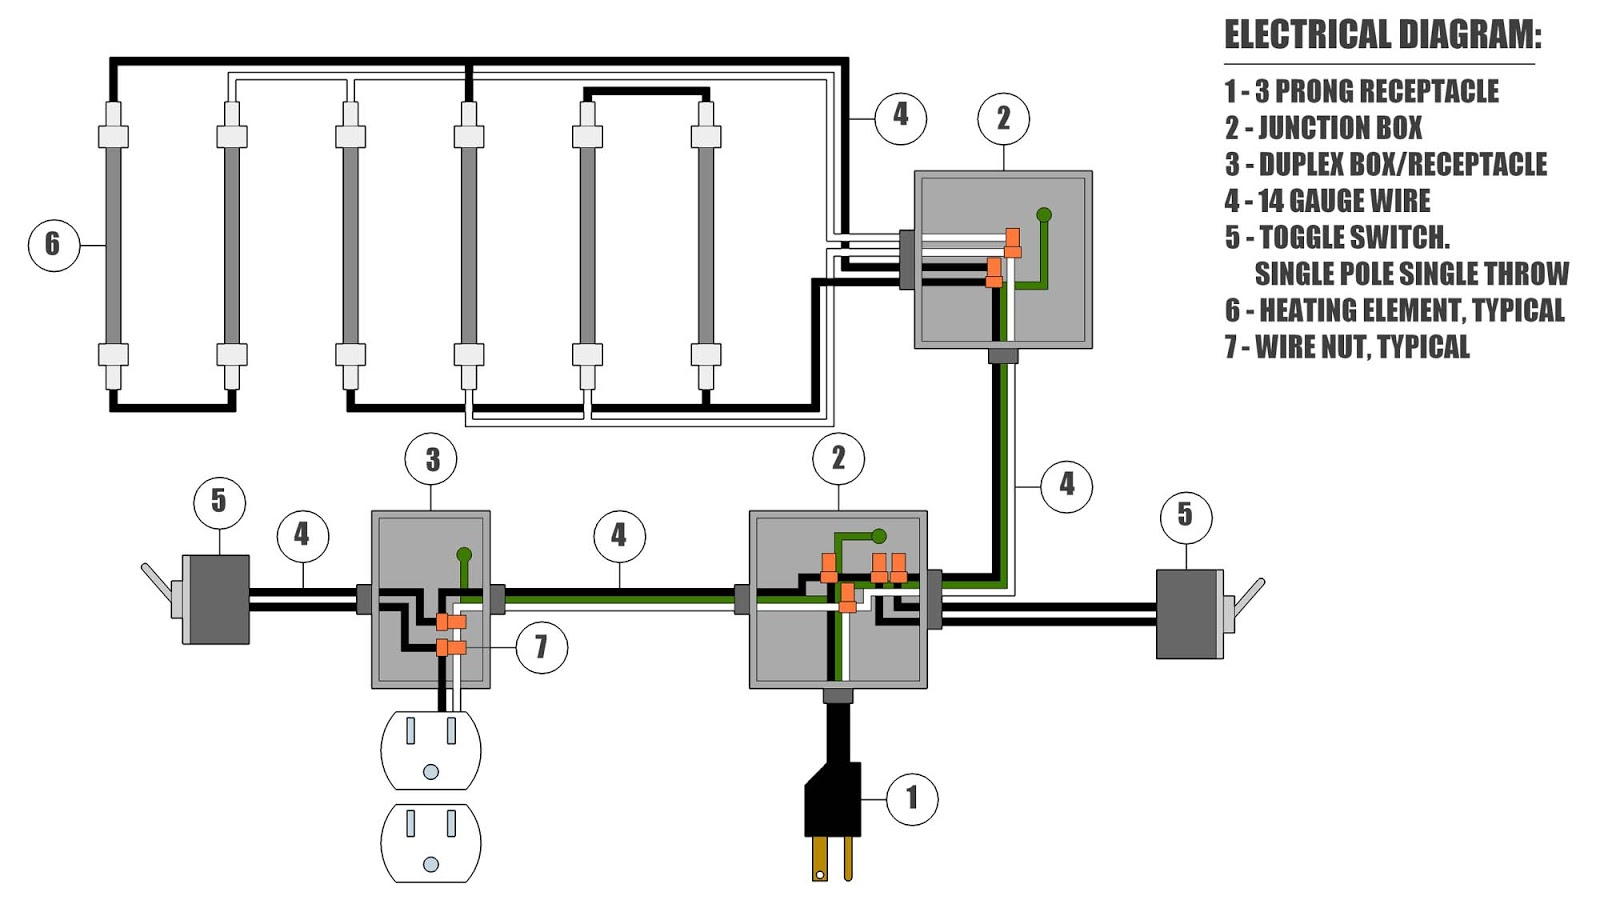 3 prong outlet wiring diagram 3 image wiring diagram 3 prong wiring diagram jodebal com on 3 prong outlet wiring diagram